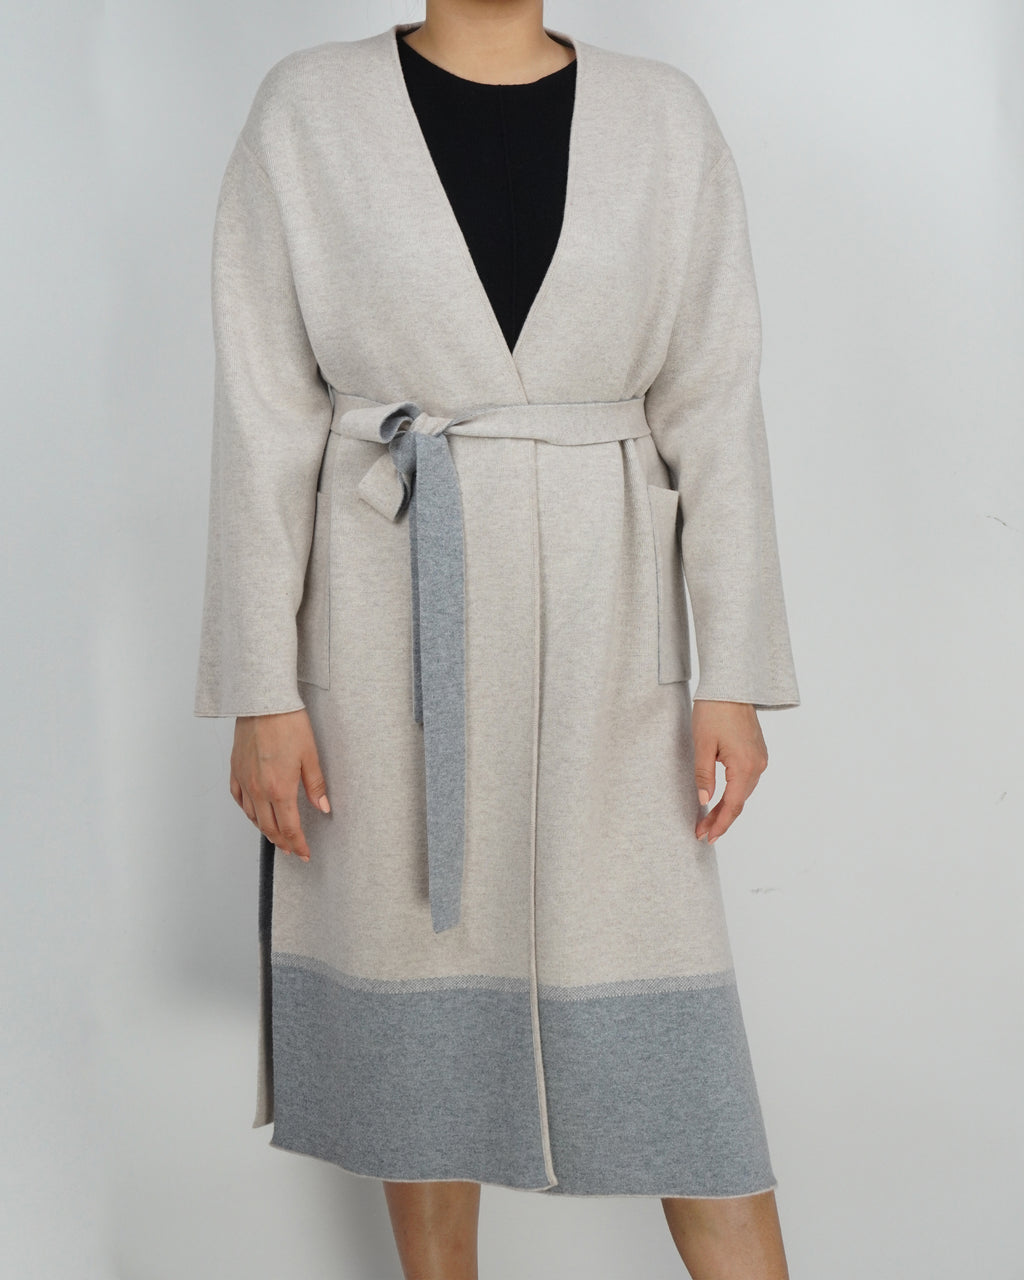 Reversible Cashmere Coat with Belt